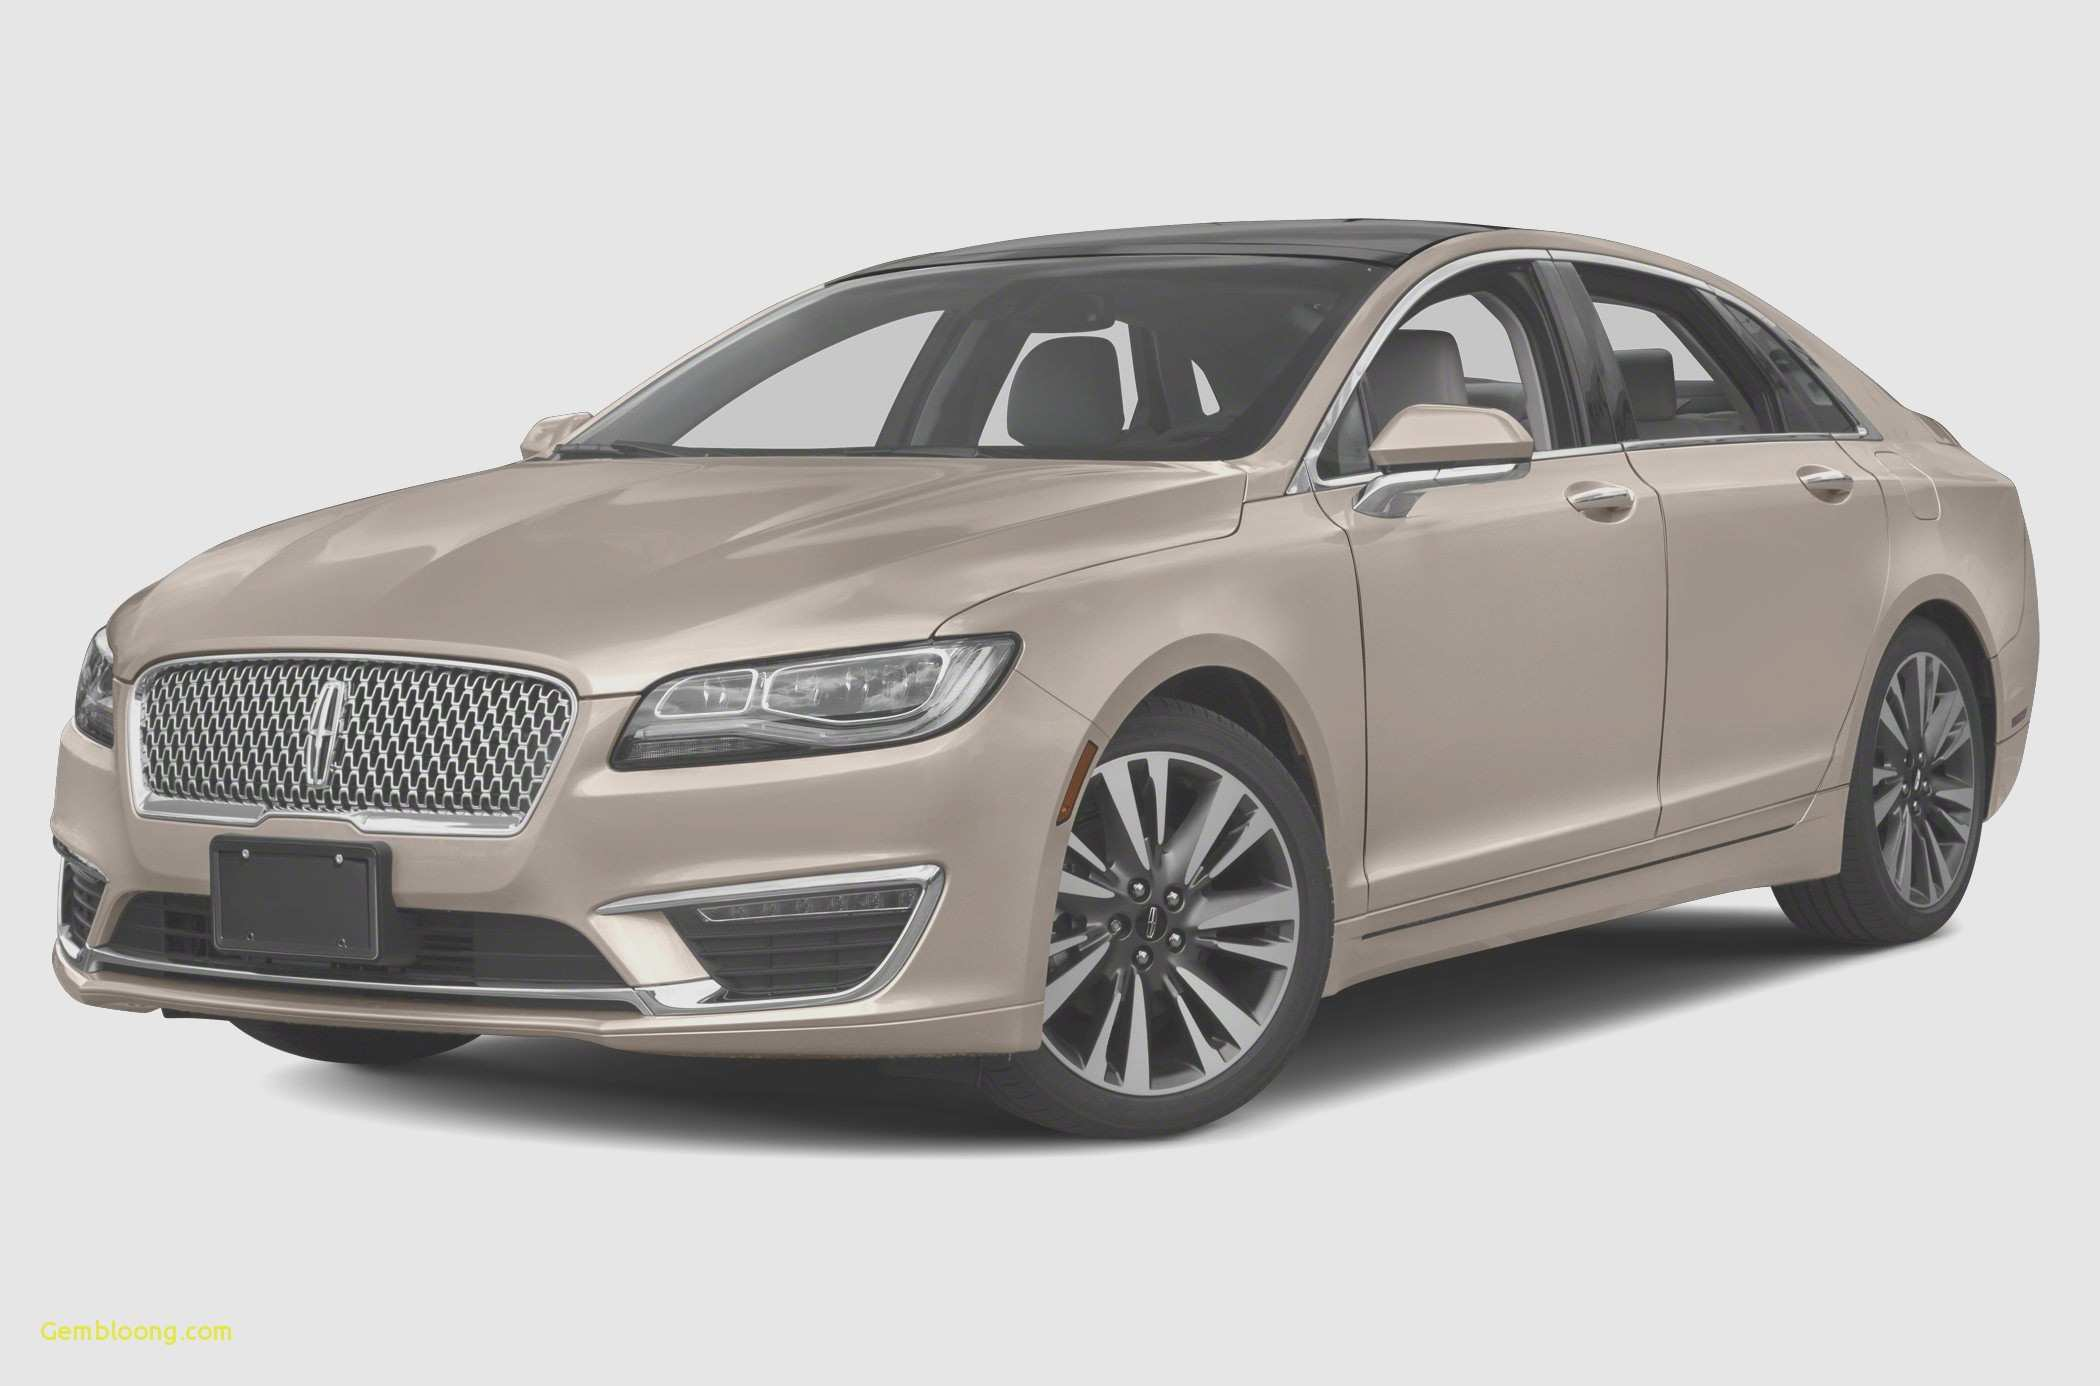 46 All New 2019 Cadillac Deville Pictures